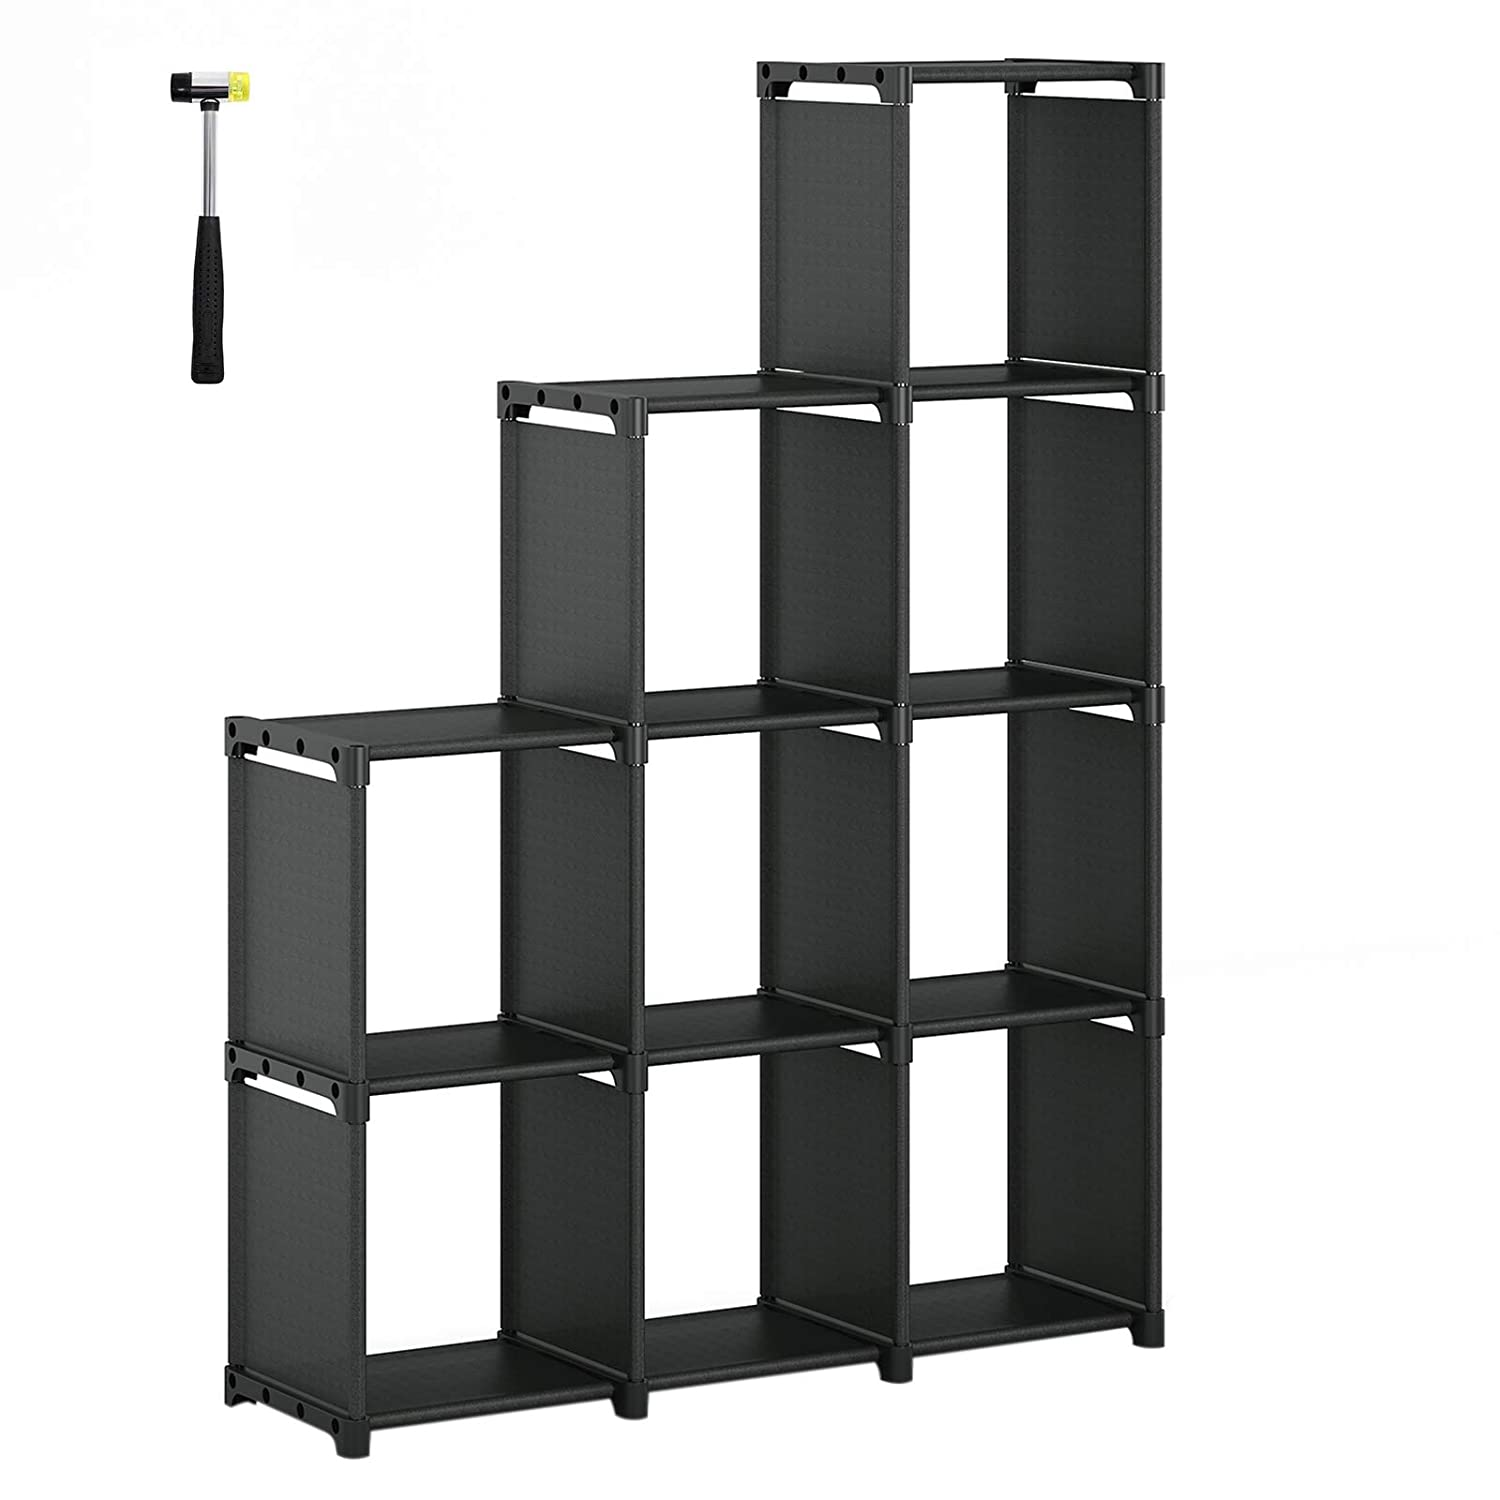 SONGMICS 9-Cube DIY Storage Shelves, Open Bookshelf, Closet Organizer, for Family Study, Living Room, Bedroom, Kid s Room, Black ULSN33BK